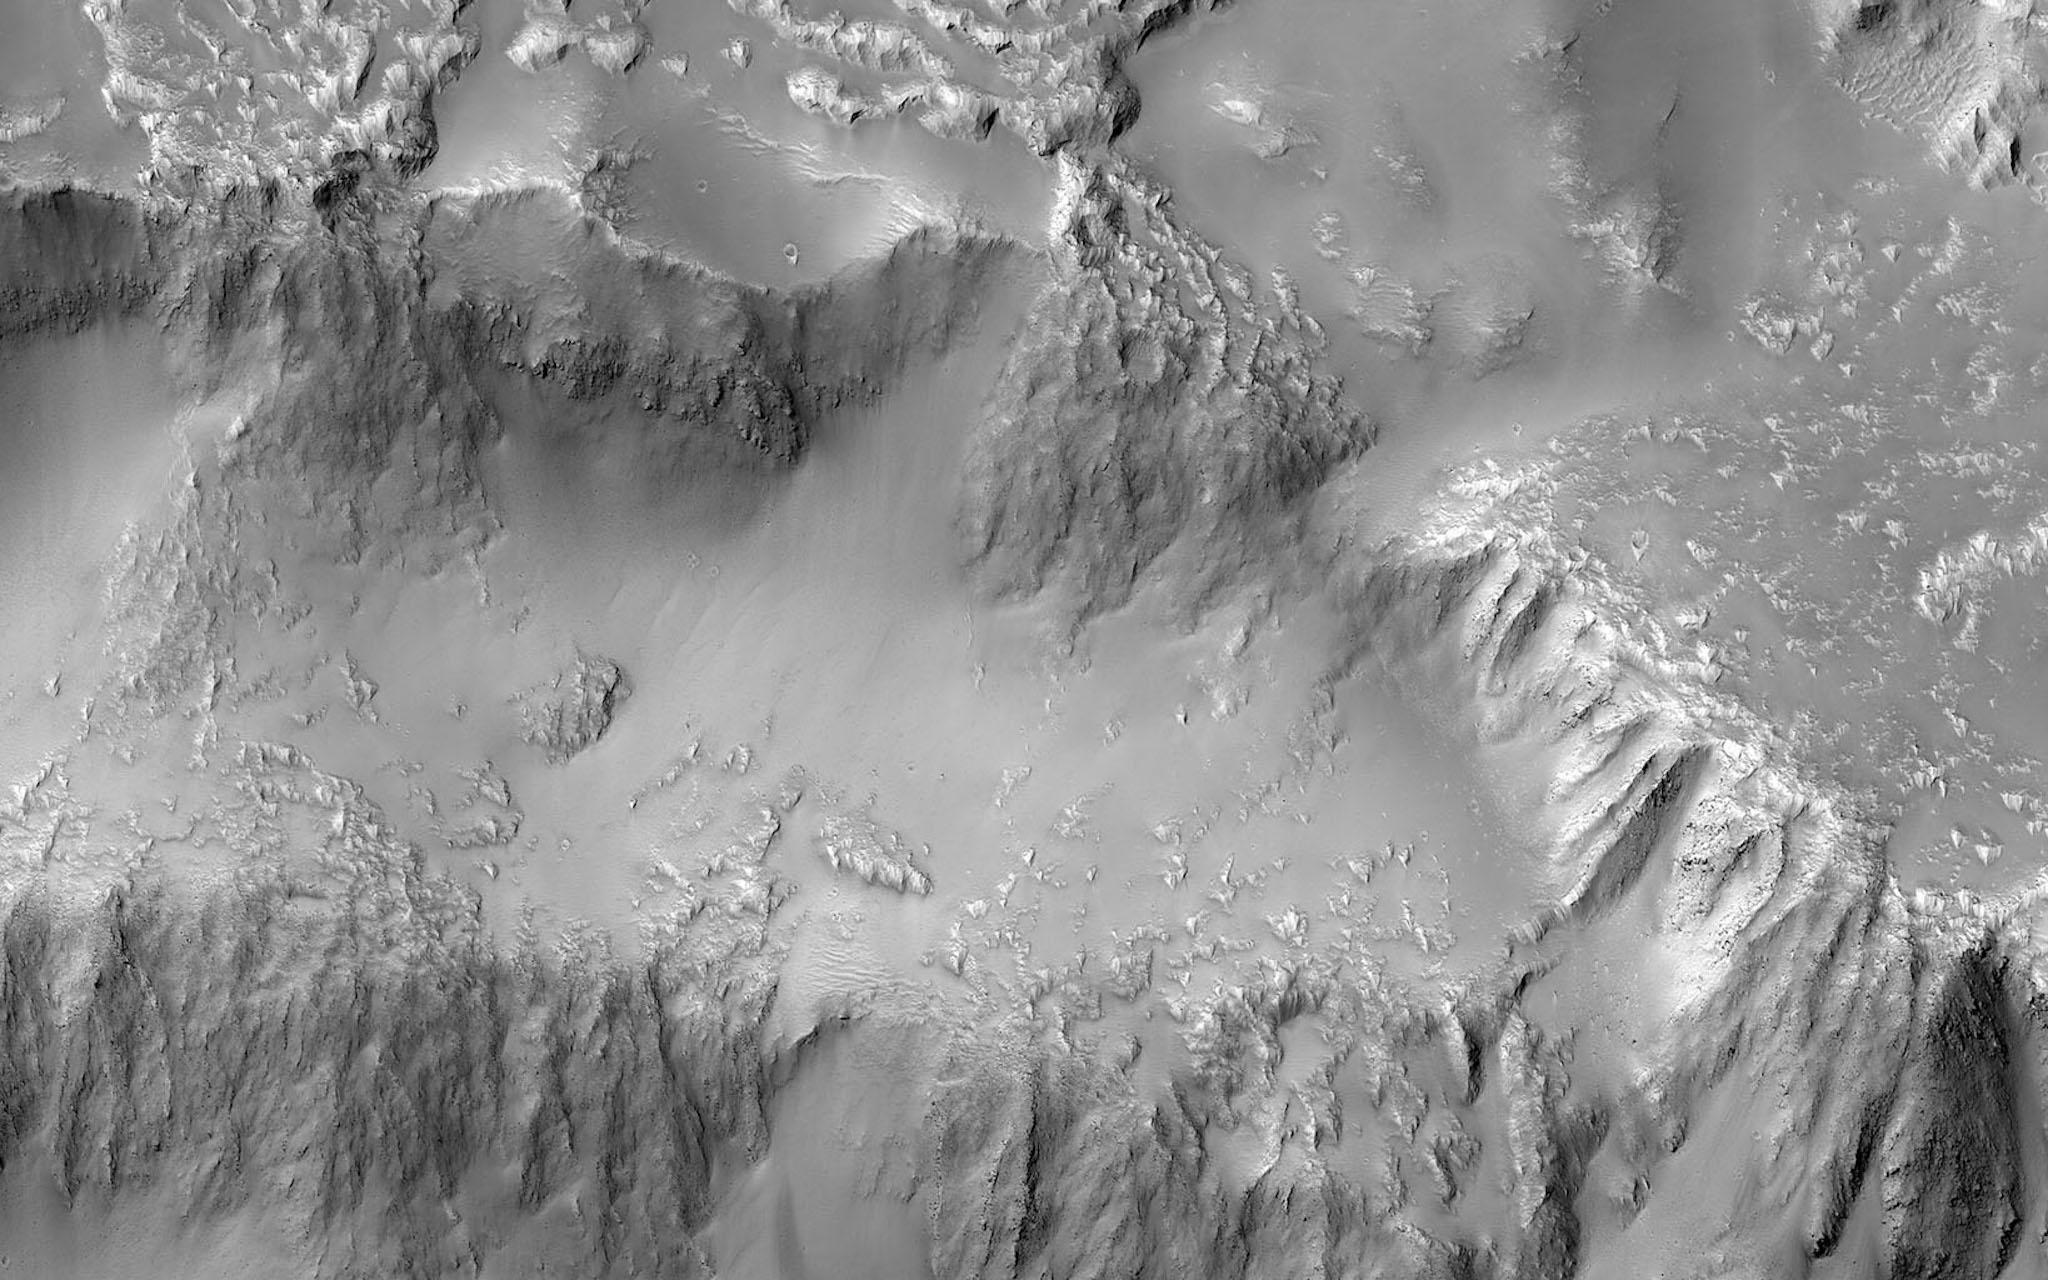 Nasa releases image of 'Niagara Falls of lava' on Mars